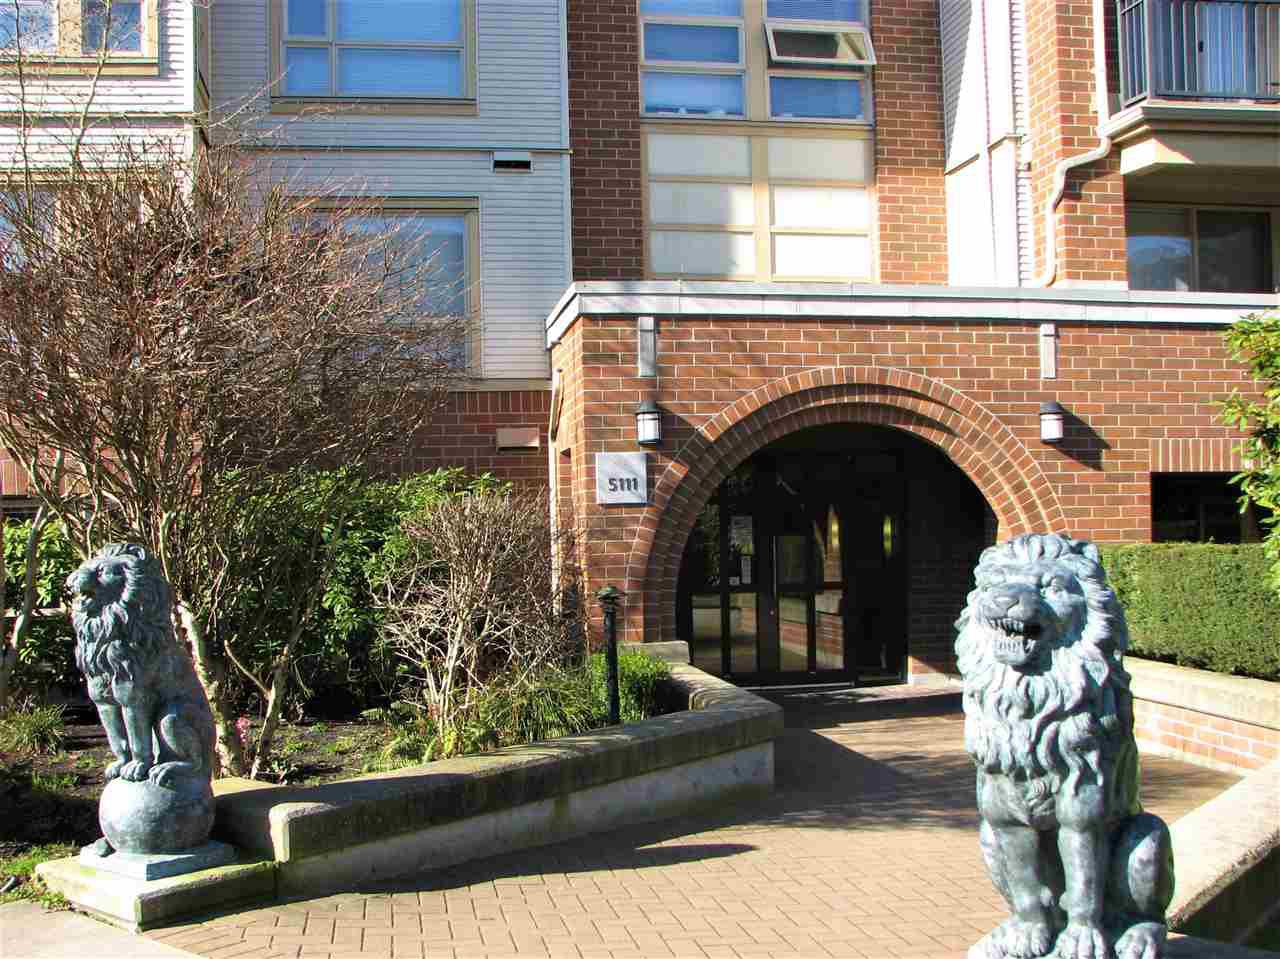 """Main Photo: 5303 5111 GARDEN CITY Road in Richmond: Brighouse Condo for sale in """"LIONS PARK"""" : MLS®# R2438425"""